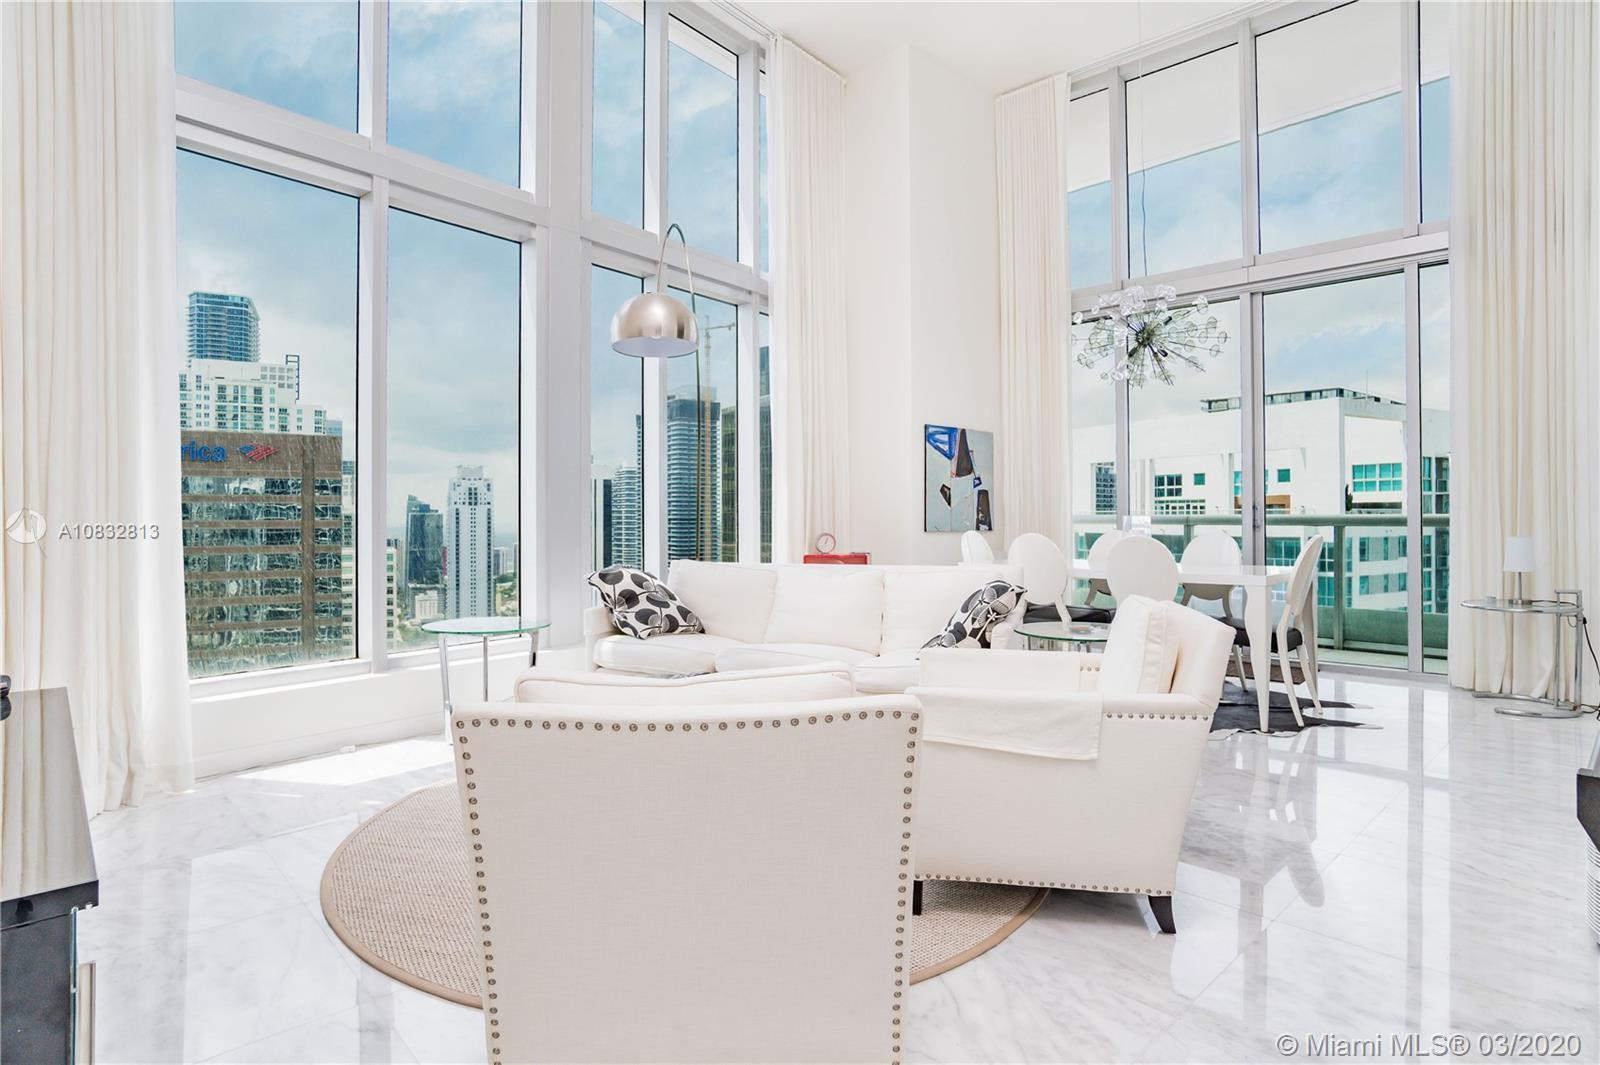 Rare corner unit in W Hotel Residences with 16 ft ceilings and best views of Miami and Biscayne Bay.